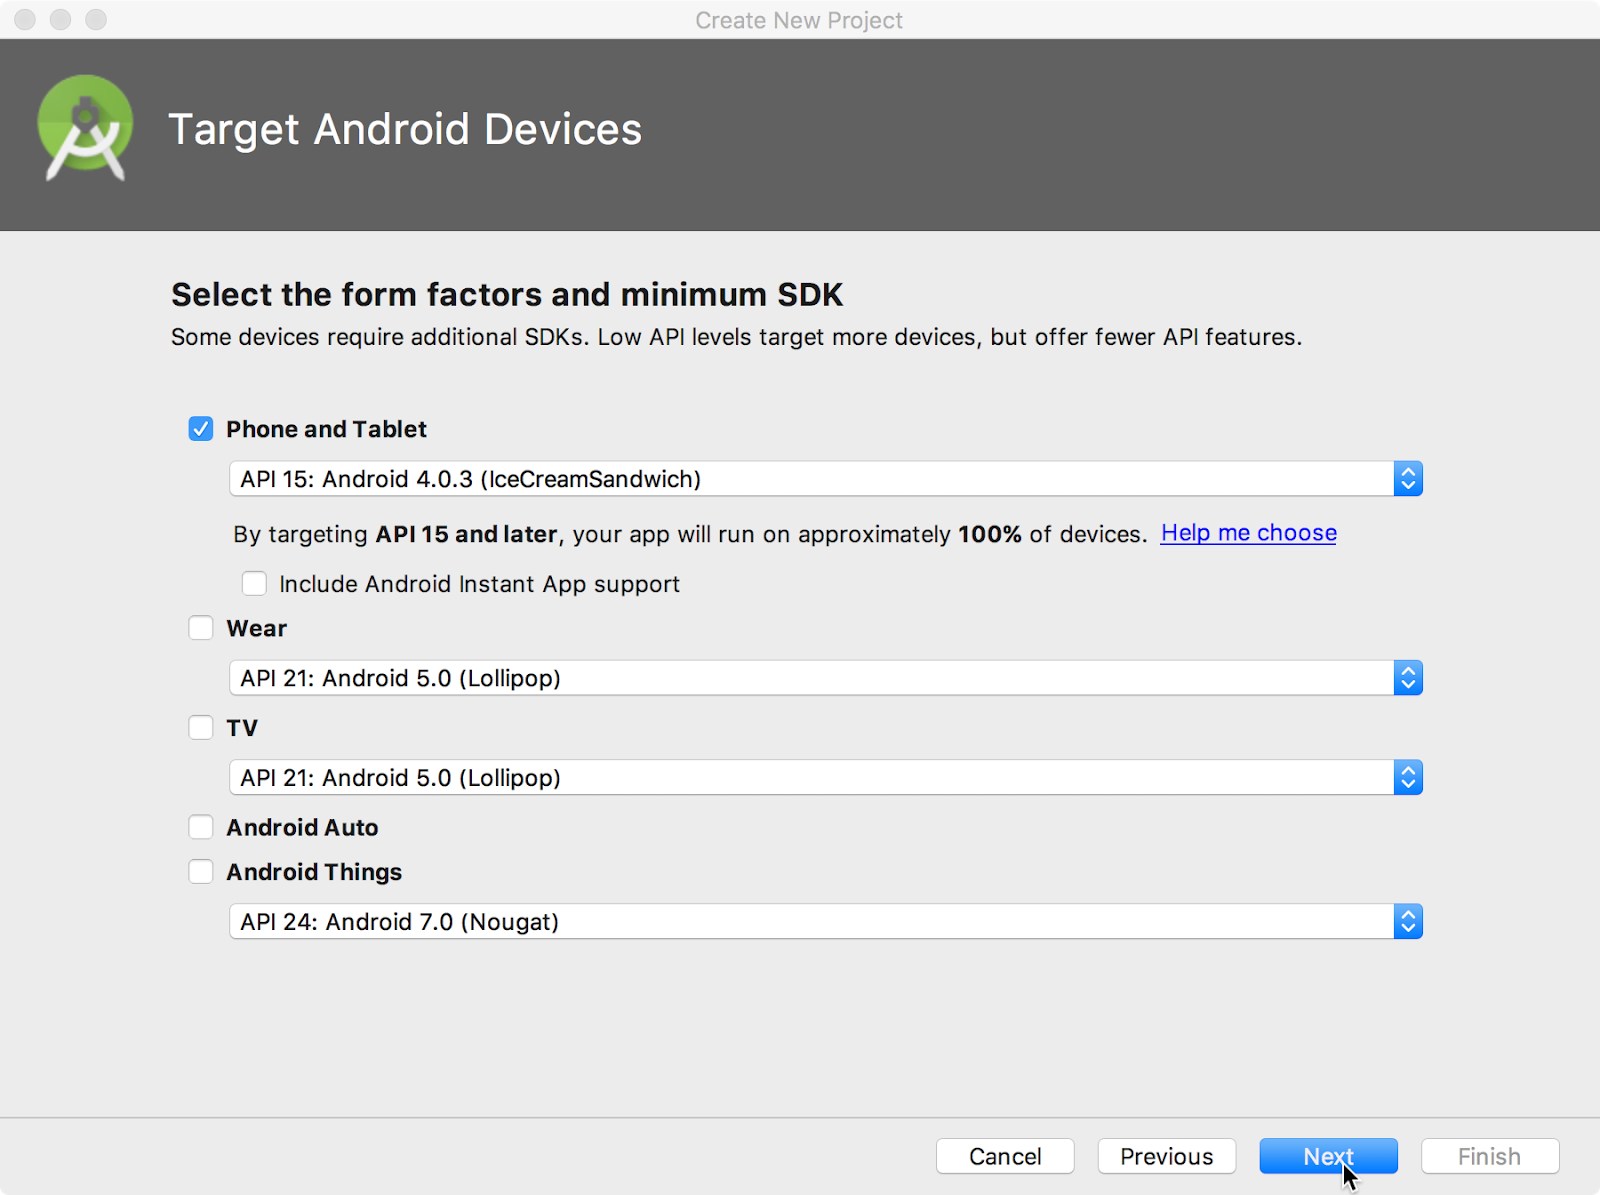 Selecting the target Android devices for the app